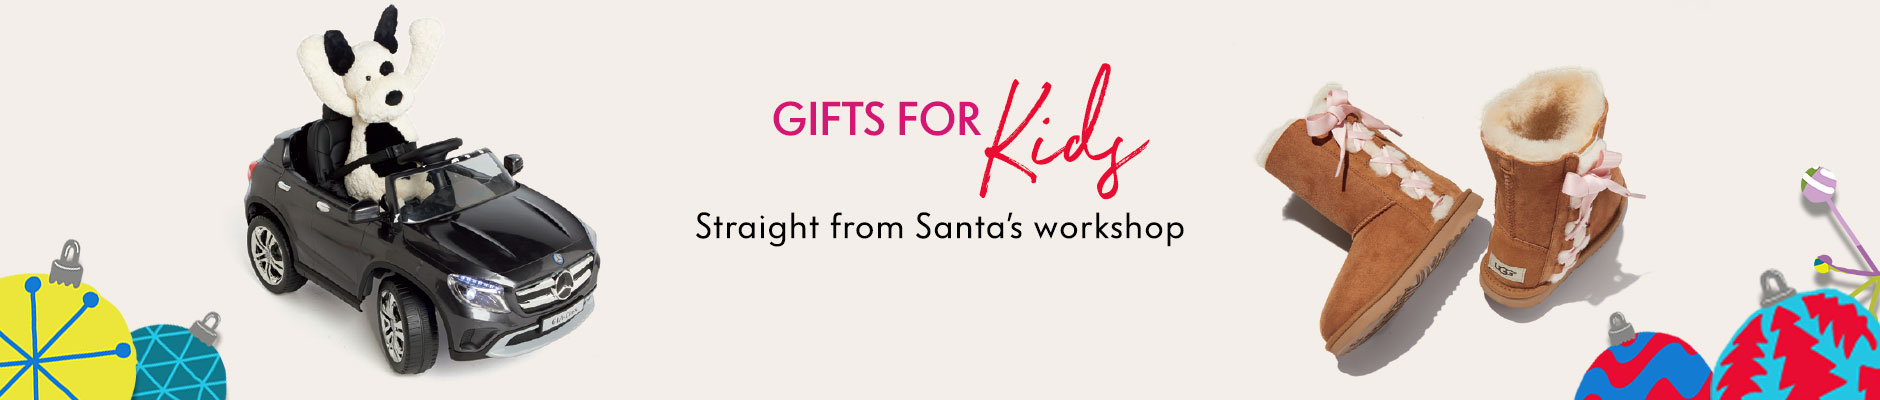 Gifts for Kids - Straight from Santa's workshop